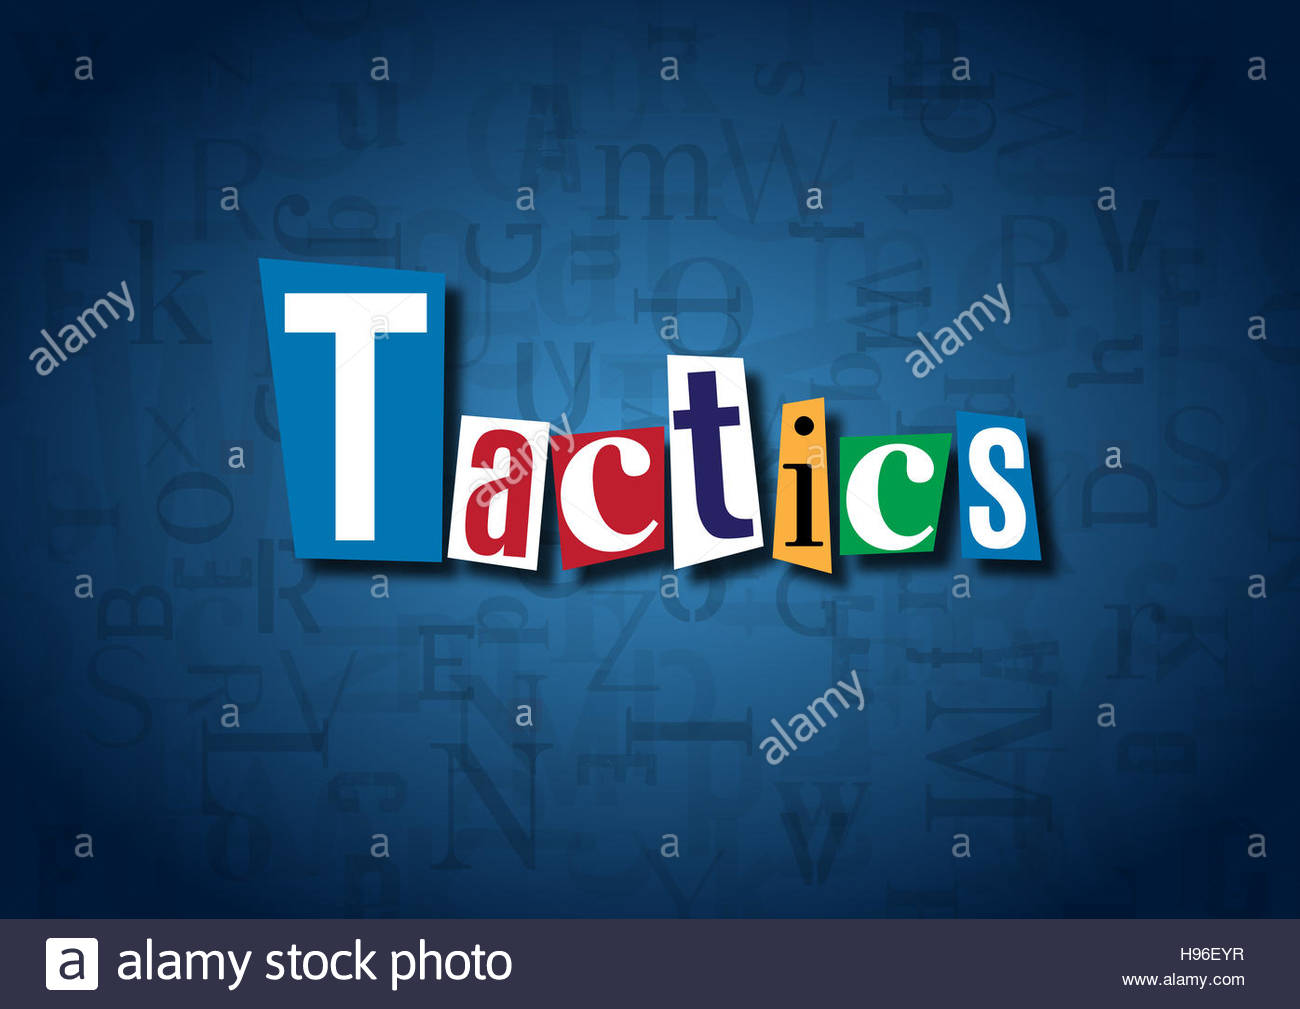 The word Tactics made from cutout letters on a blue background - Stock Image